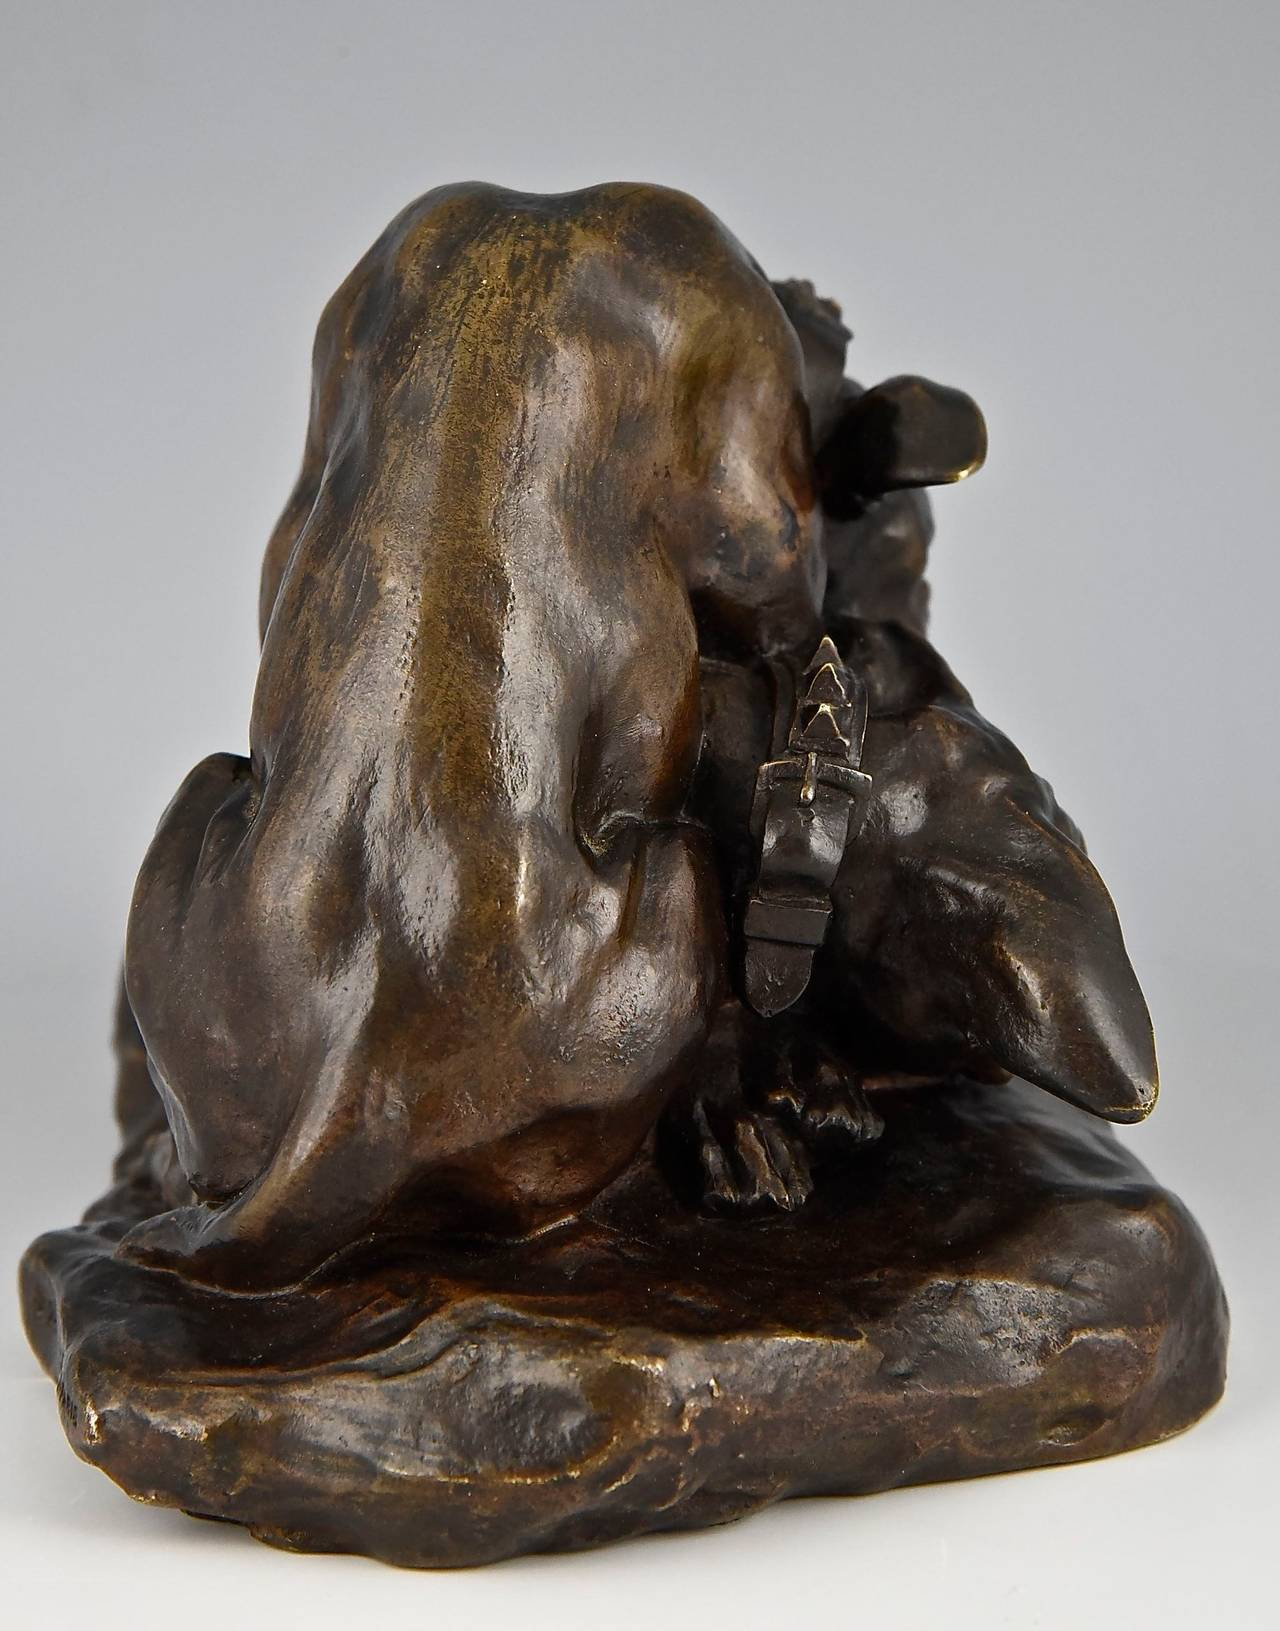 Bronze Bulldog sculpture by Thomas Cartier France 1900  In Good Condition For Sale In Antwerp, BE